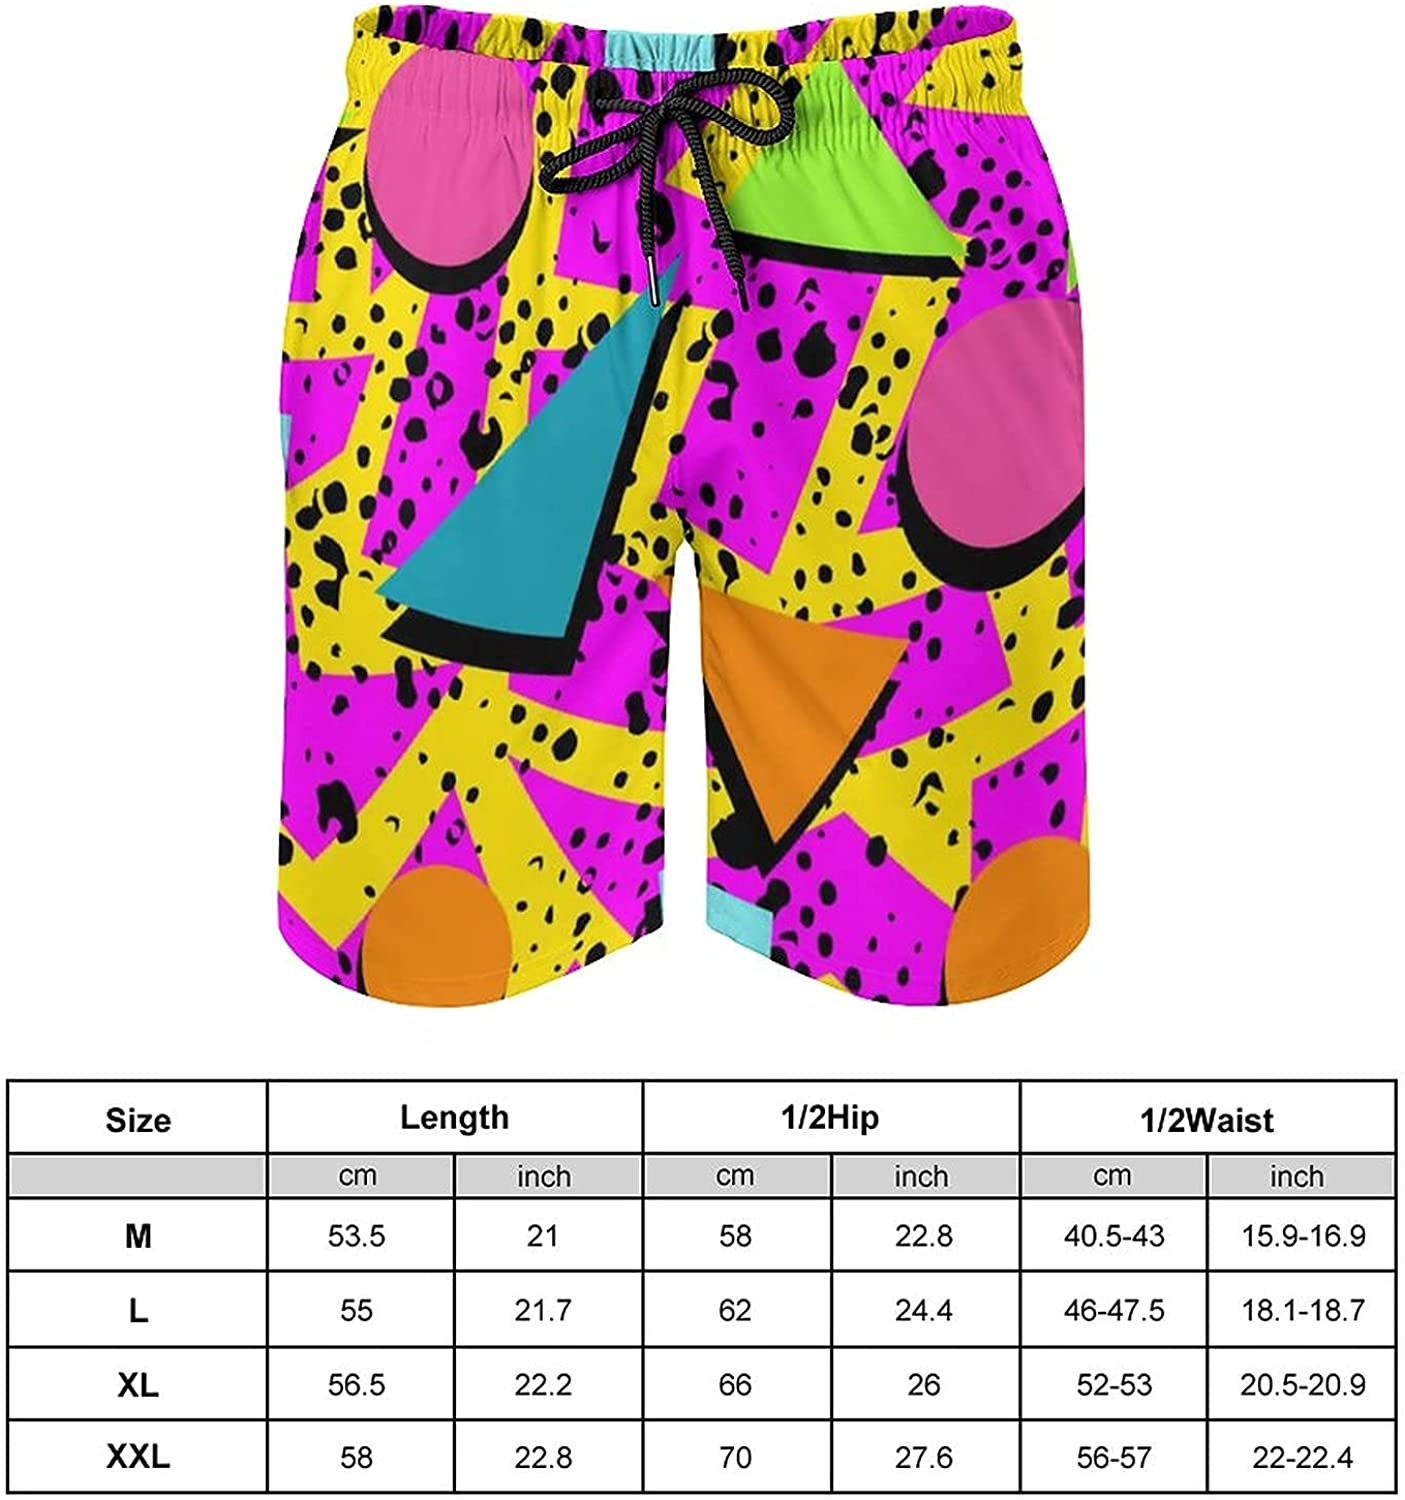 Retro 80S Or 90S Beach Shorts for Men, Quick Dry with Mesh Lining and Pockets